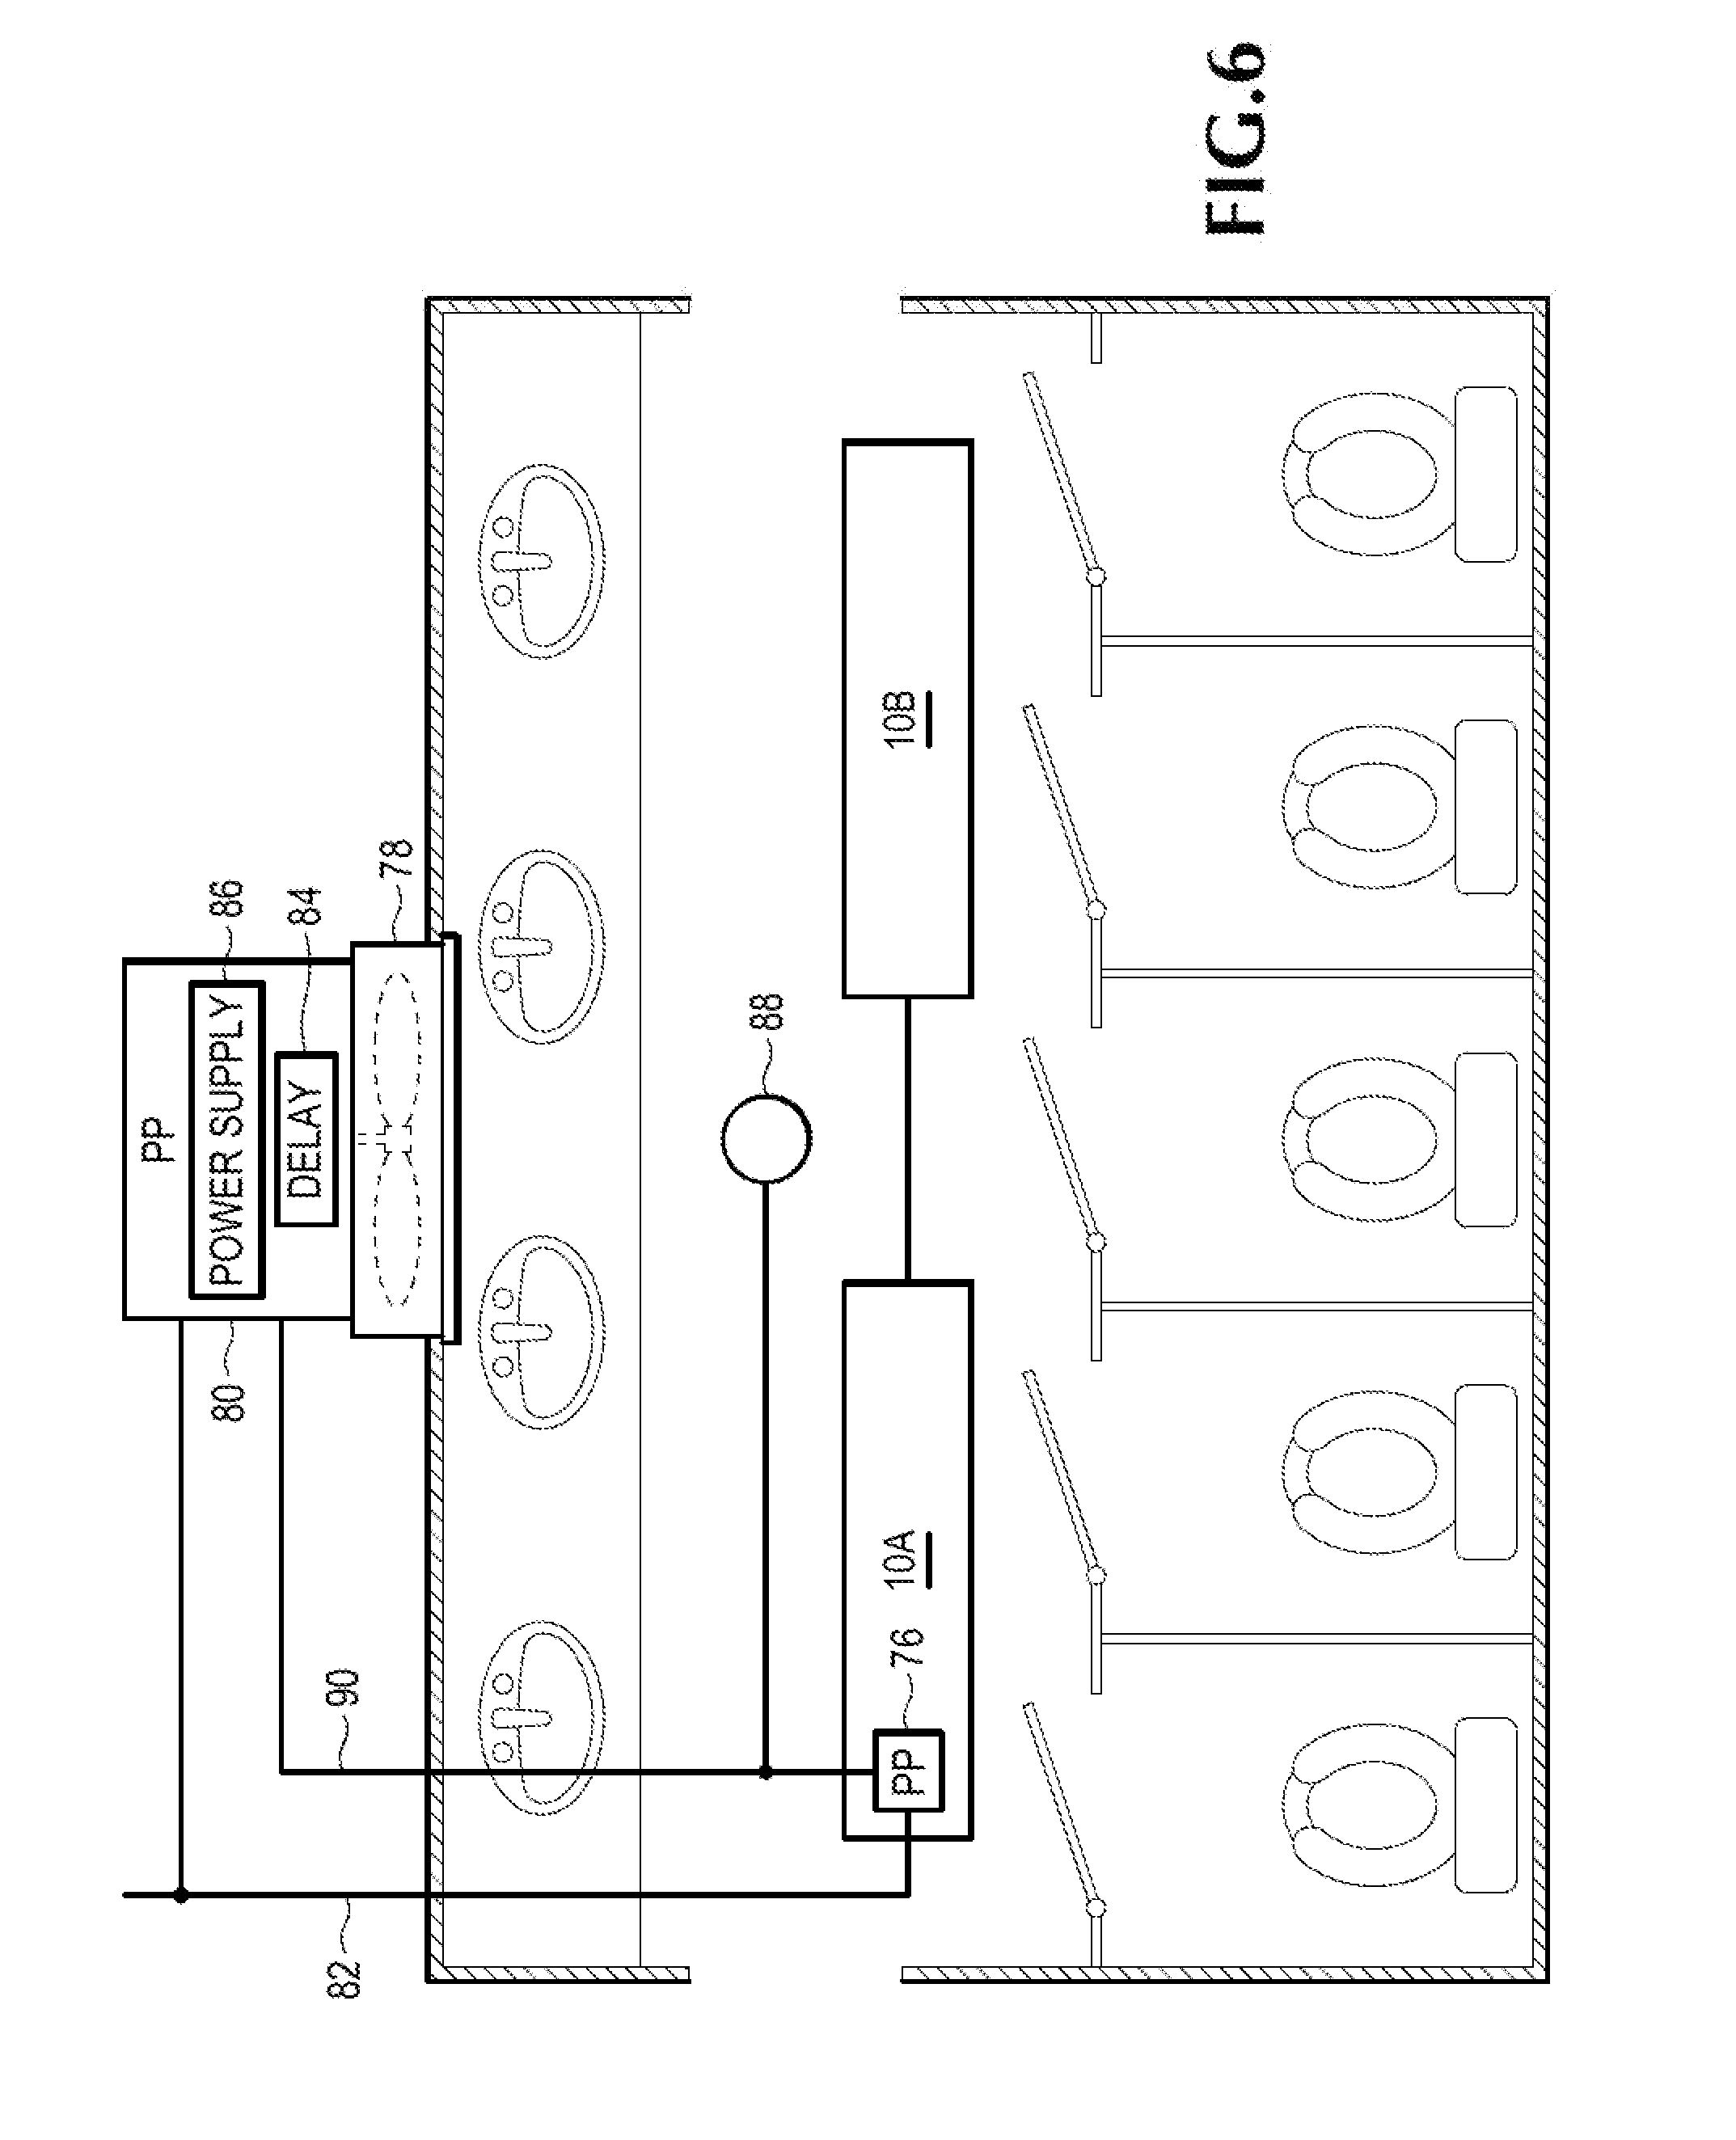 patent us8710697 - bi-level switching with power packs